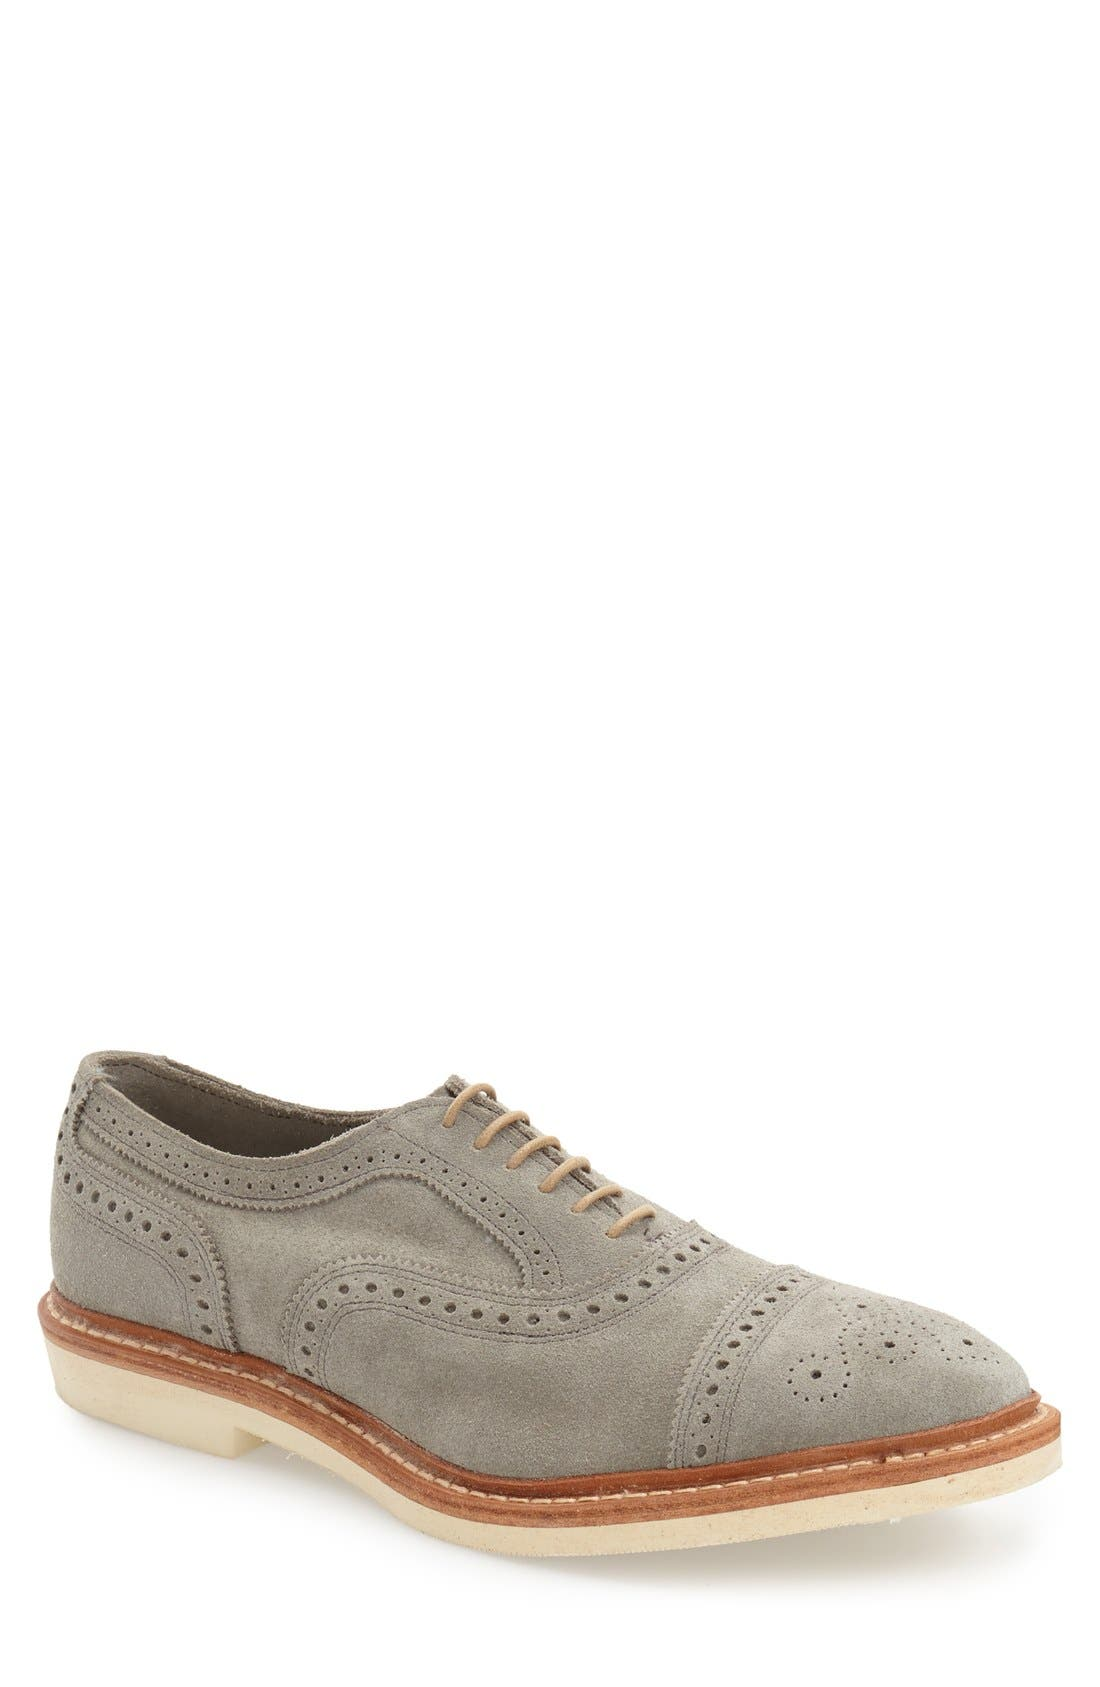 'Strandmok' Cap Toe Oxford,                             Main thumbnail 1, color,                             Grey Suede